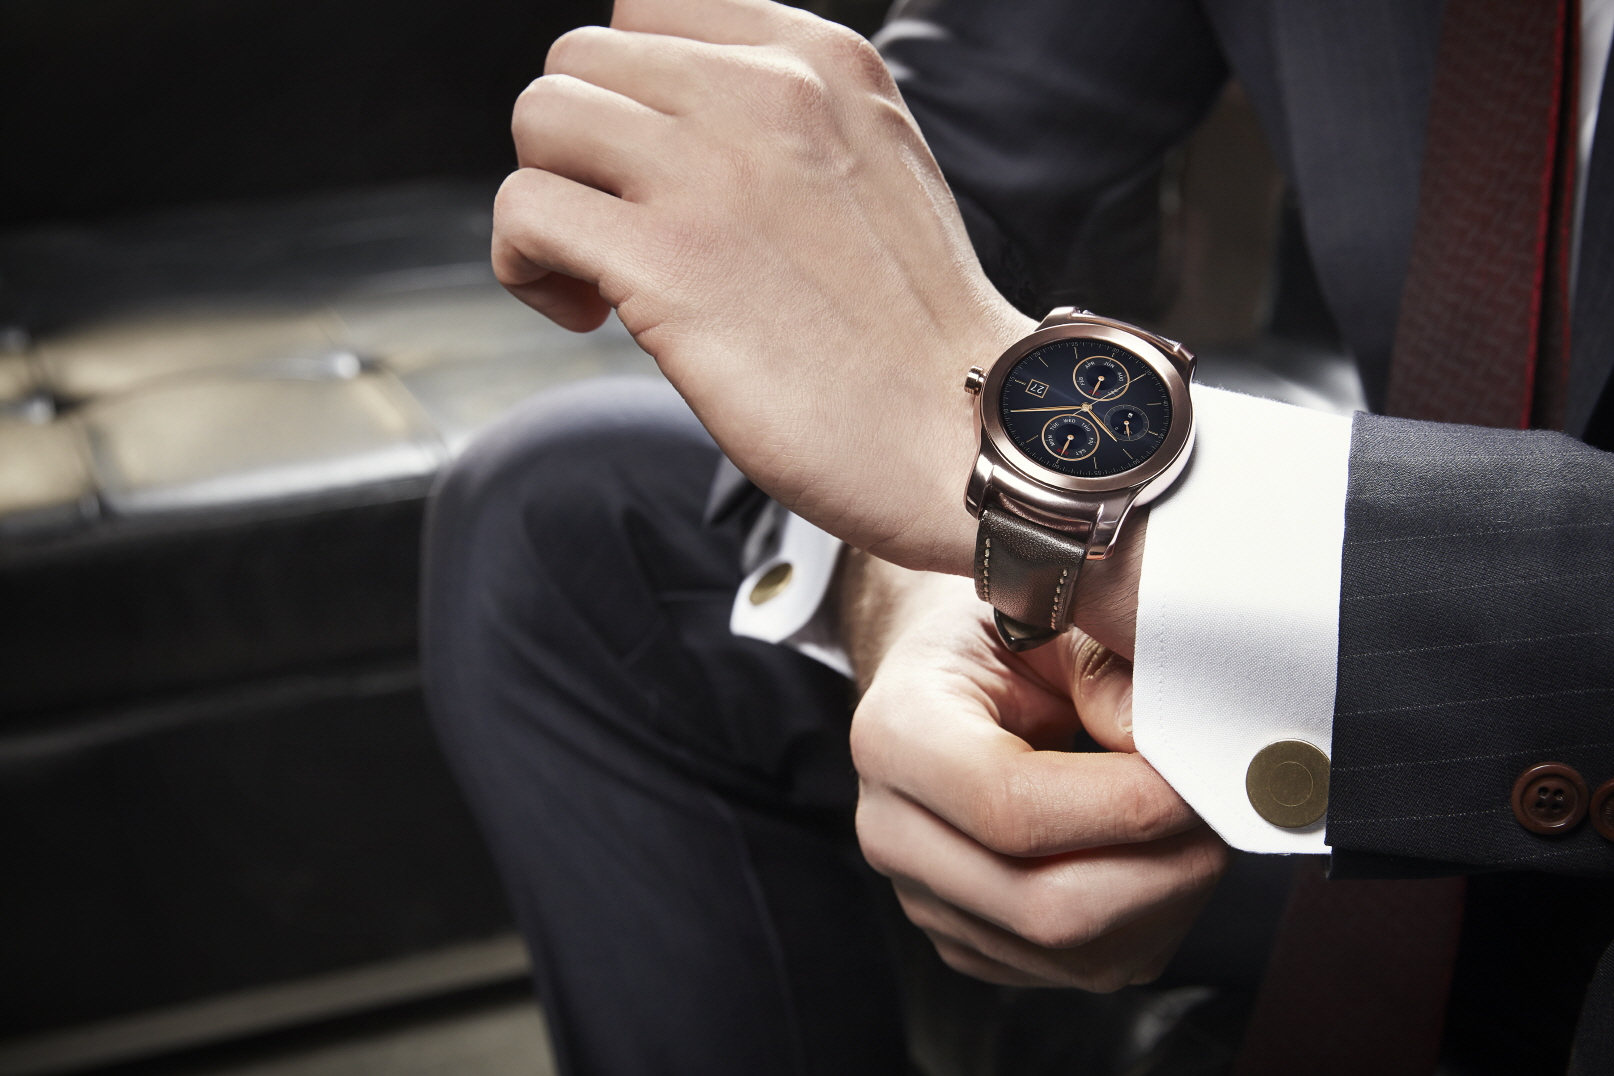 LG Reveals All-metal Smartwatch as Apple Watch Rival